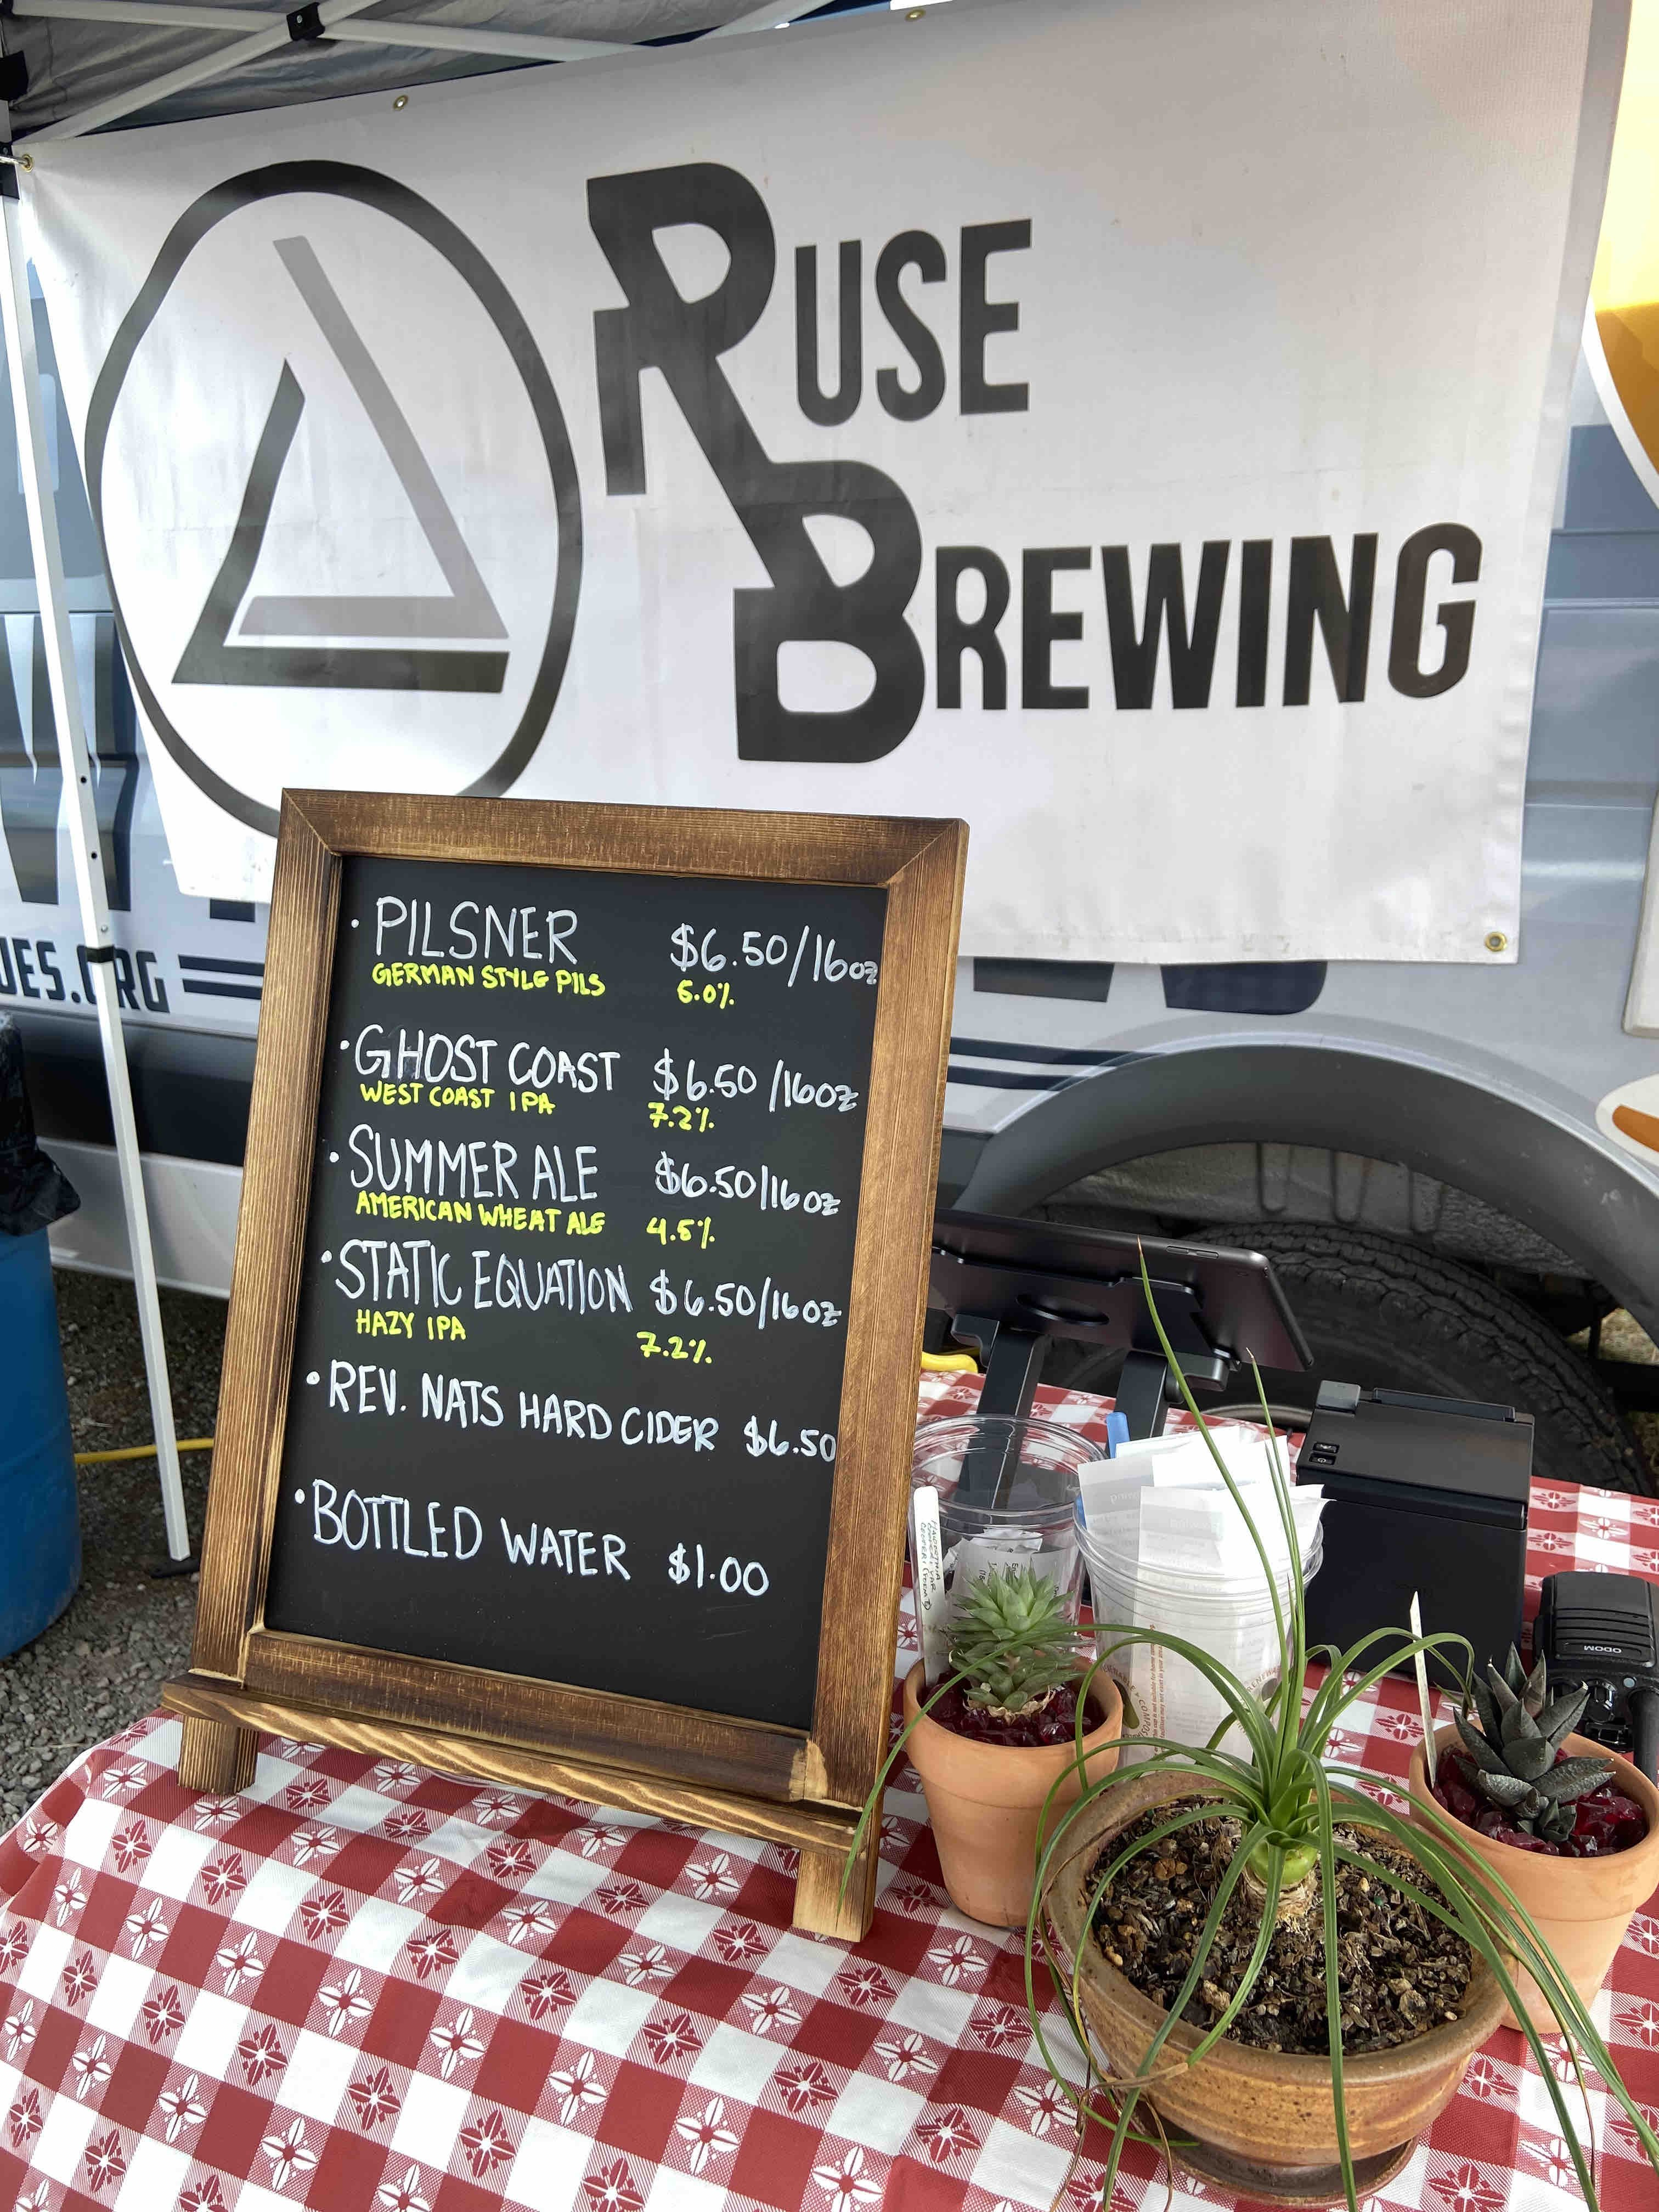 The opening weekend taplist from Ruse Brewing at Brooklyn Garden.